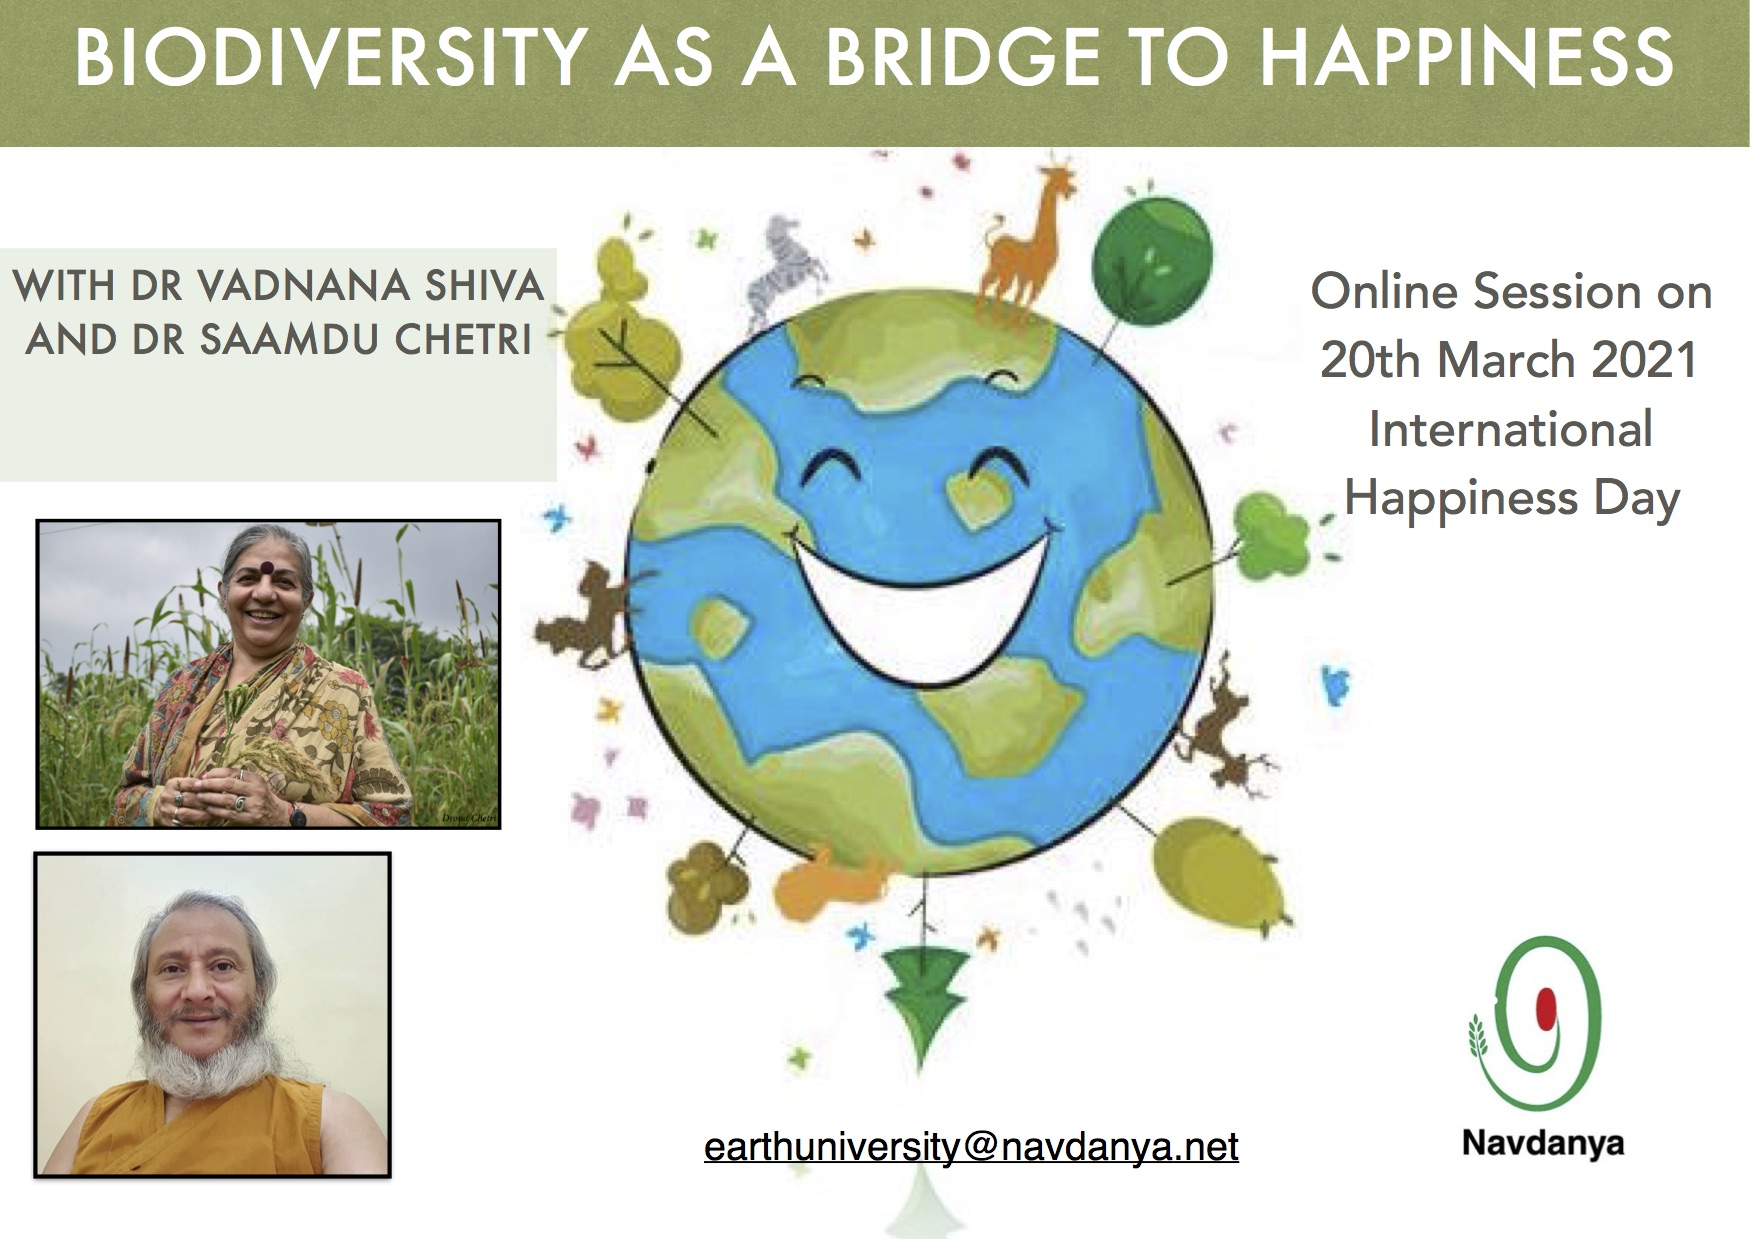 Biodiversity as a Bridge to Happiness